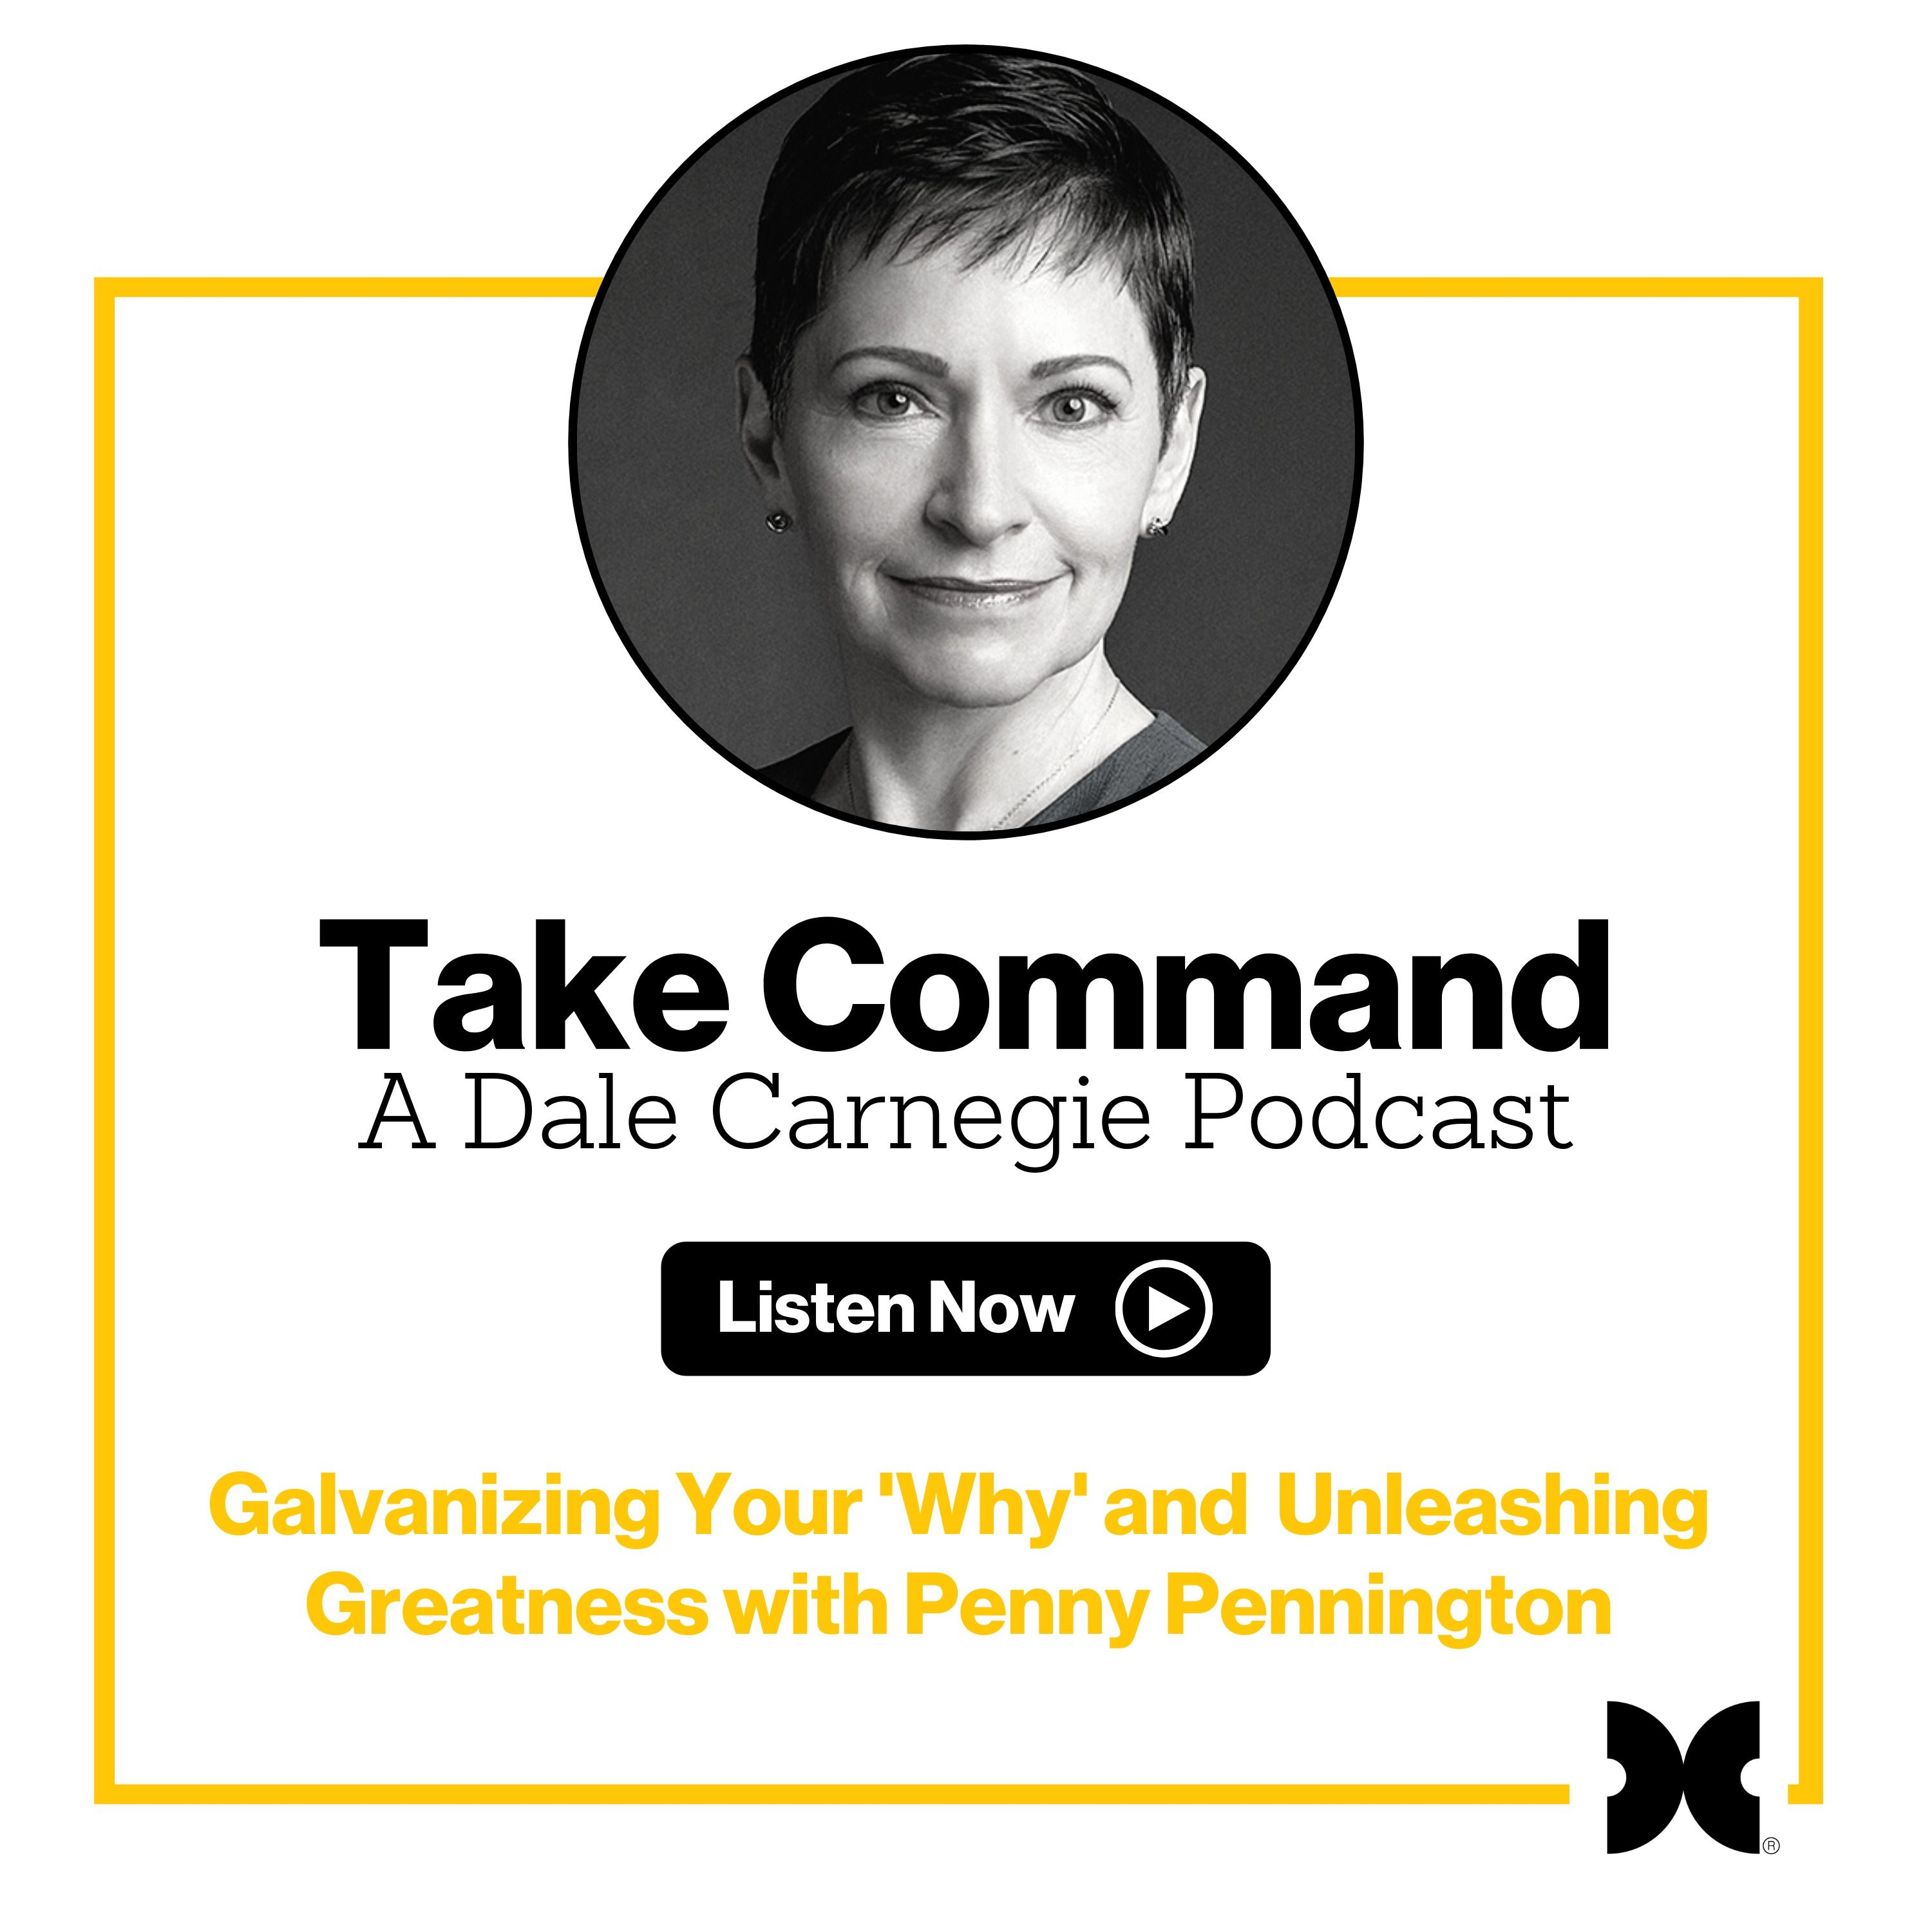 """Galvanizing Your """"Why"""" and Unleashing Greatness"""